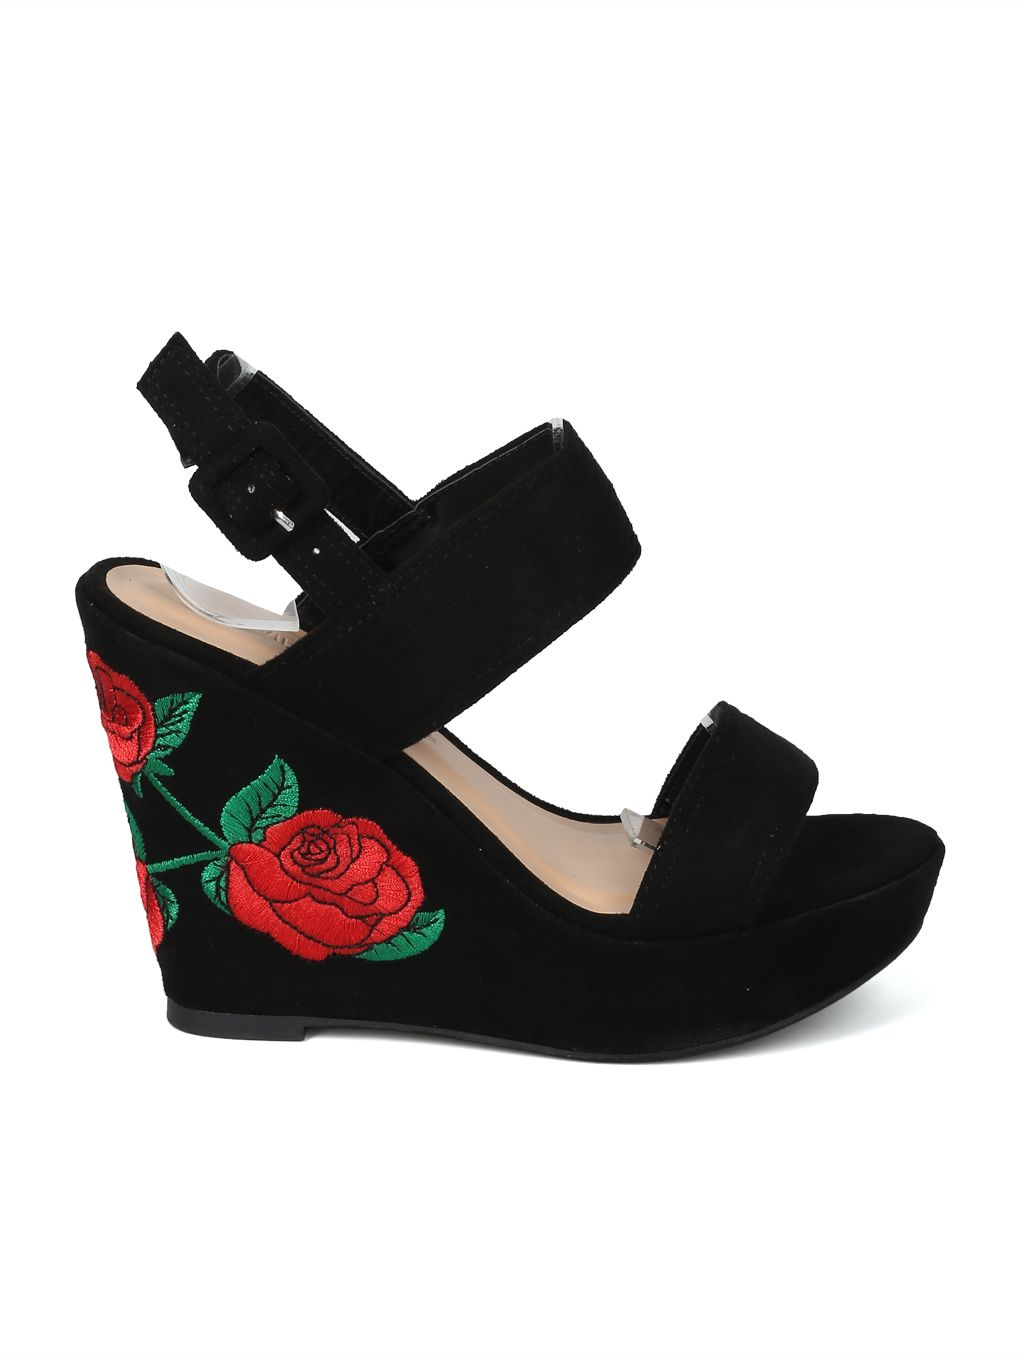 0a296651b06689 Black Faux Suede Platform Wedge Sandals